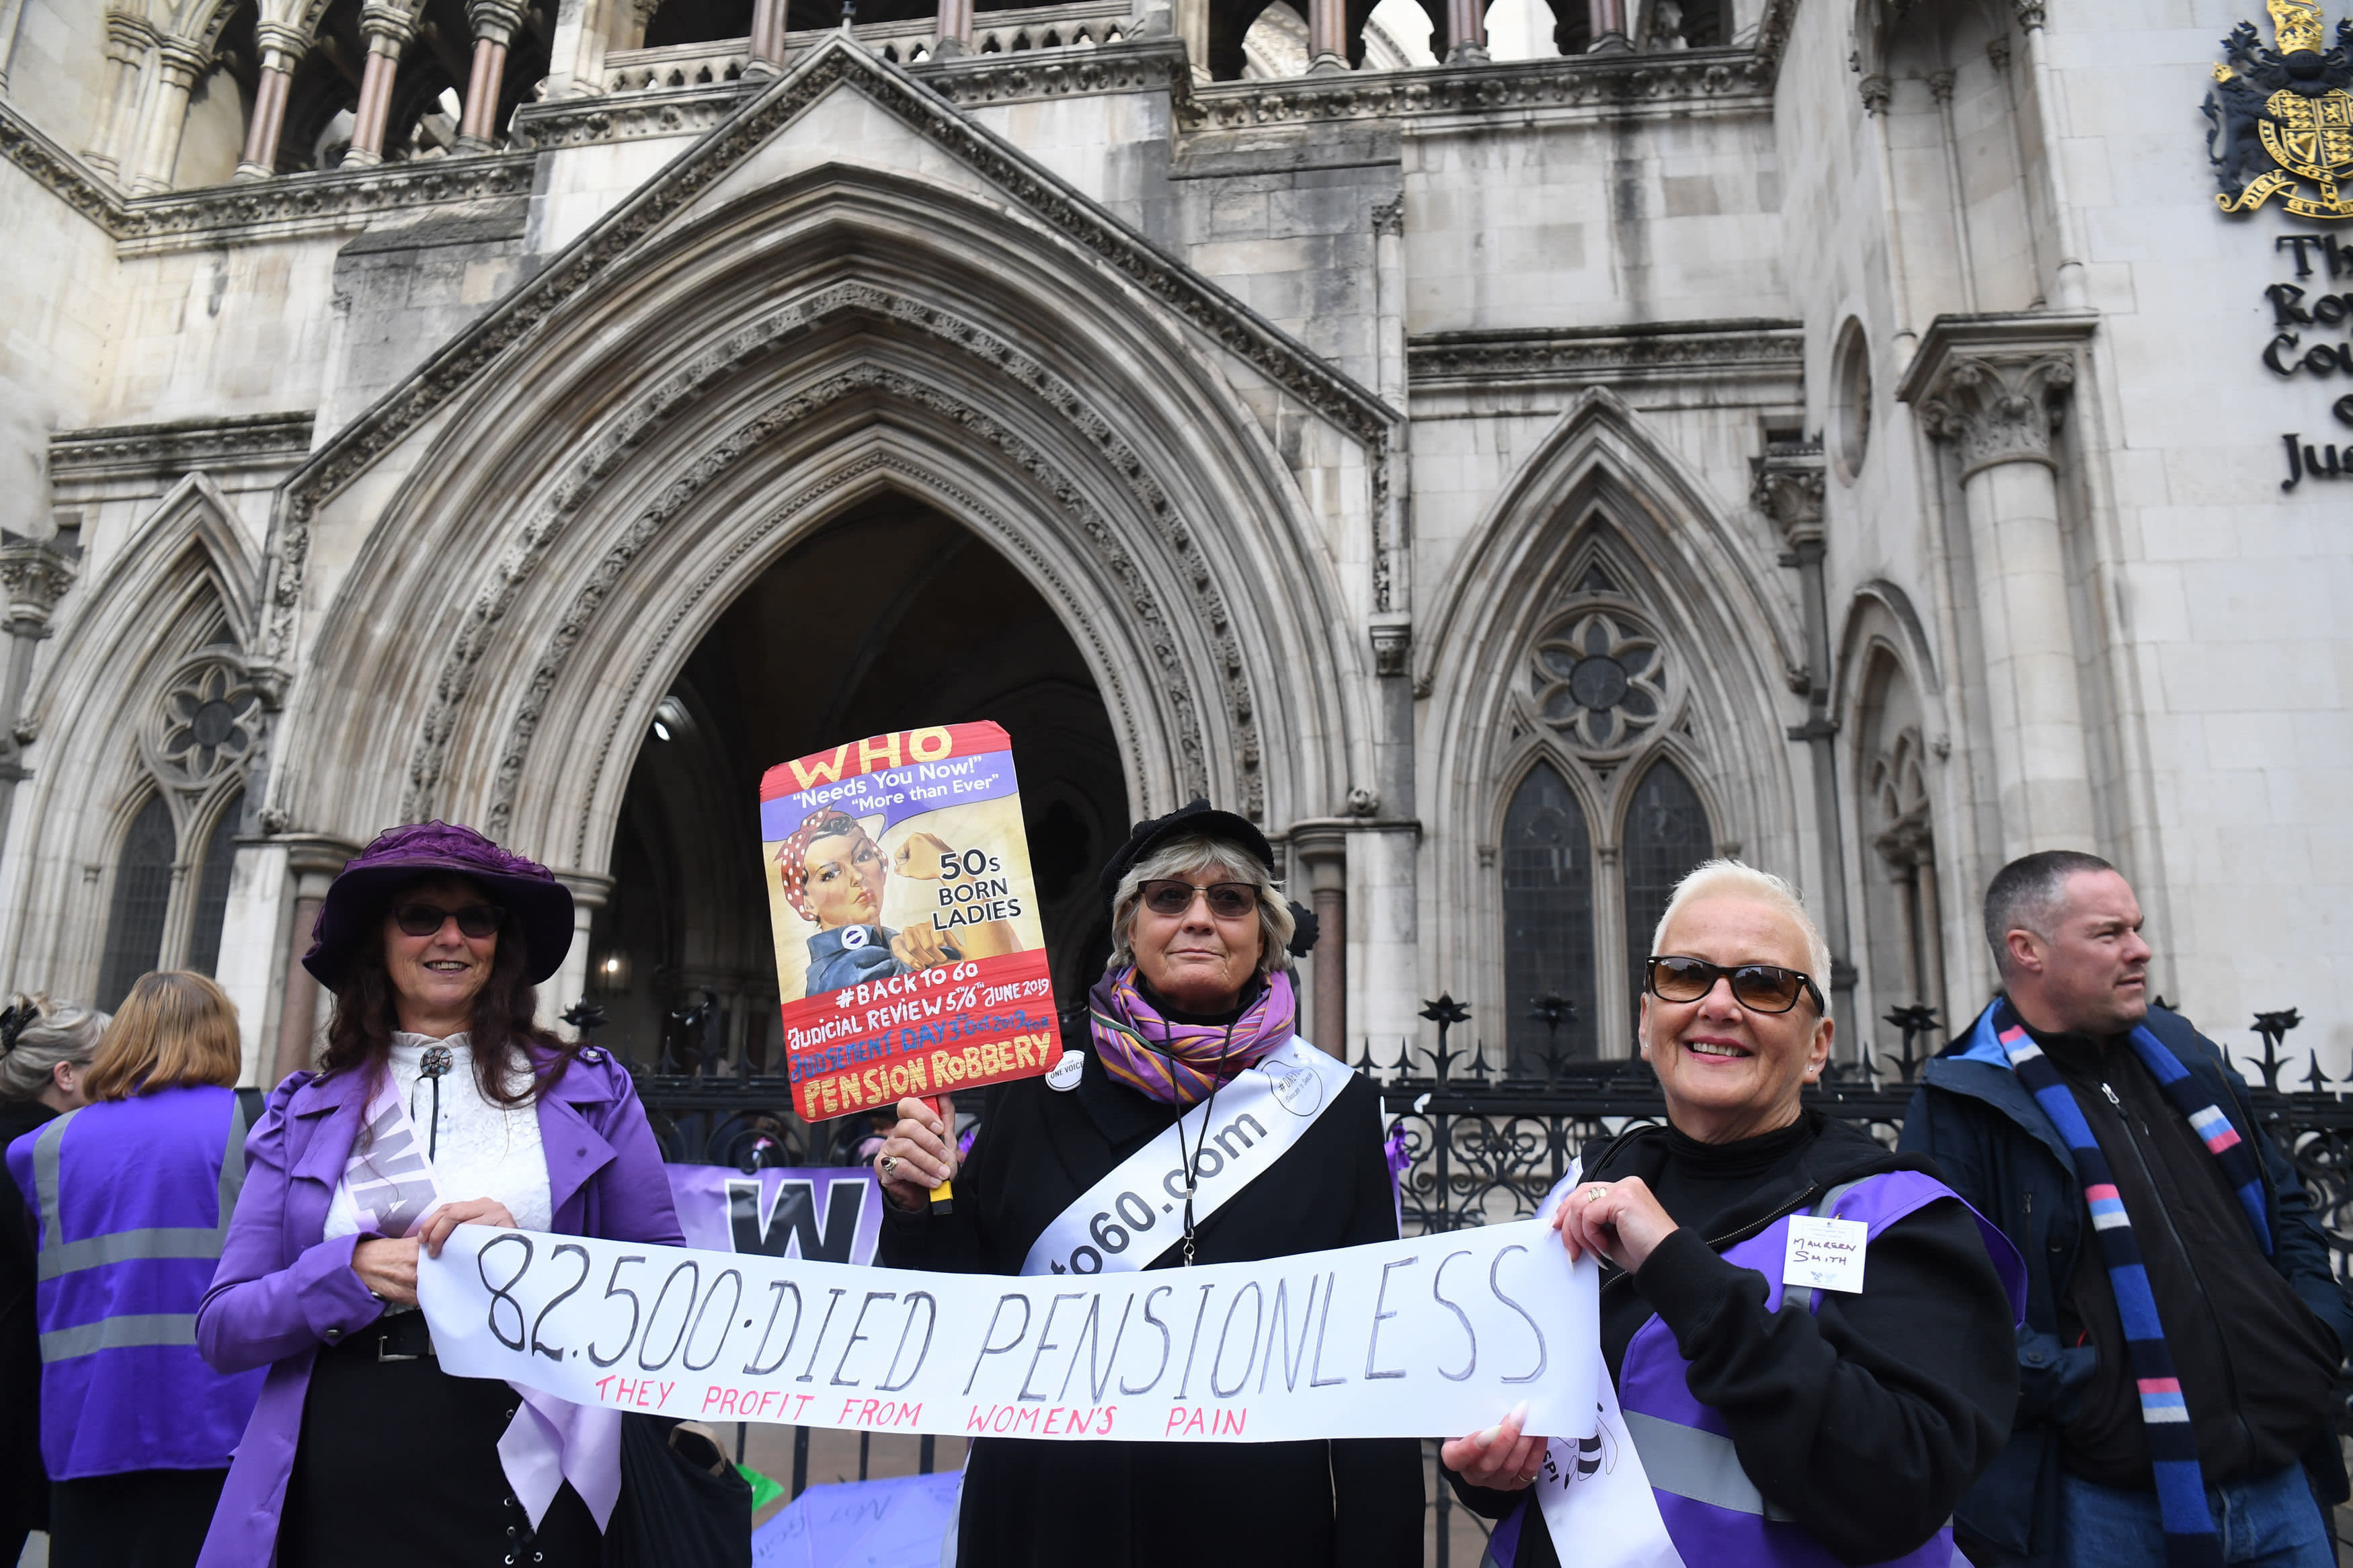 Date set for appeal hearing on women's pensions